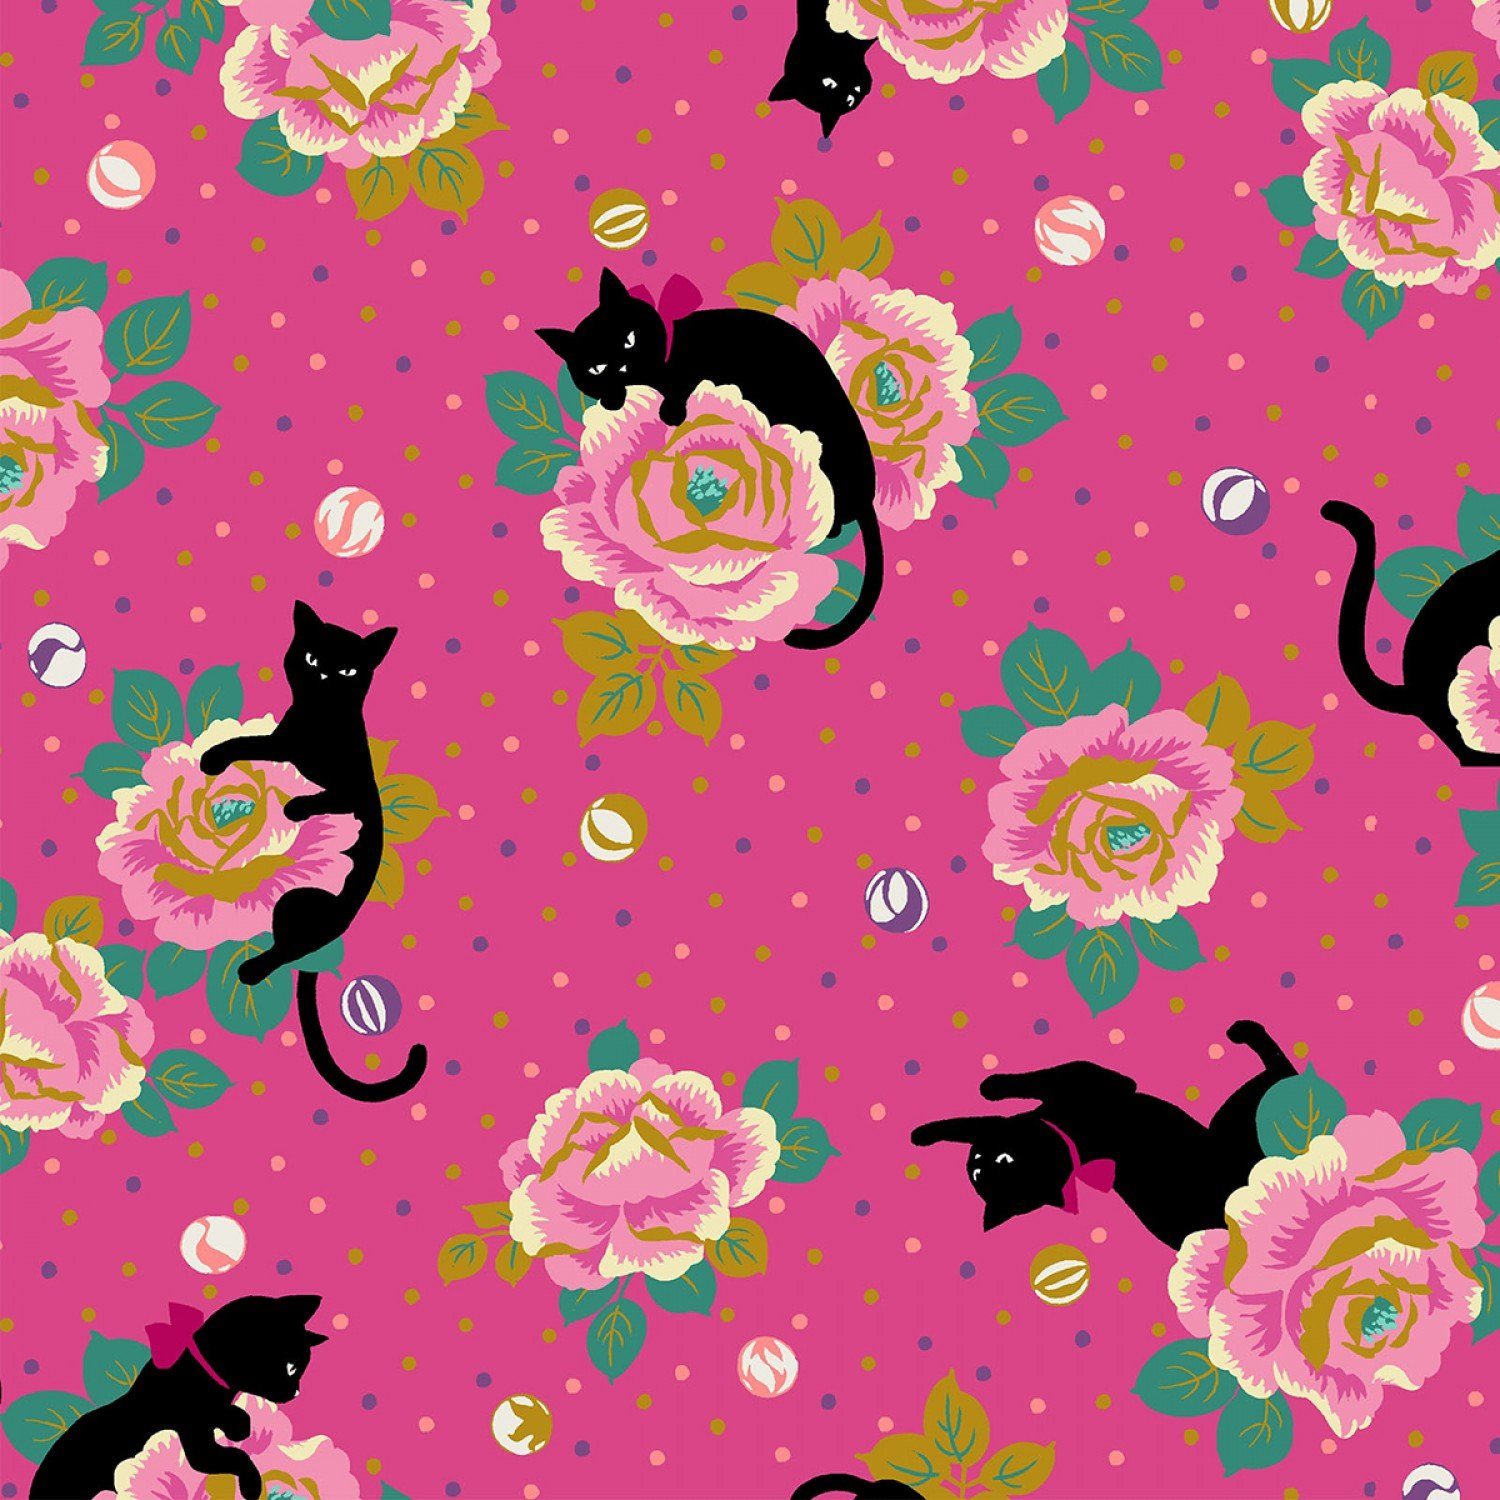 *Pink Flowers on Pink with Black Cat - HR3270-13C